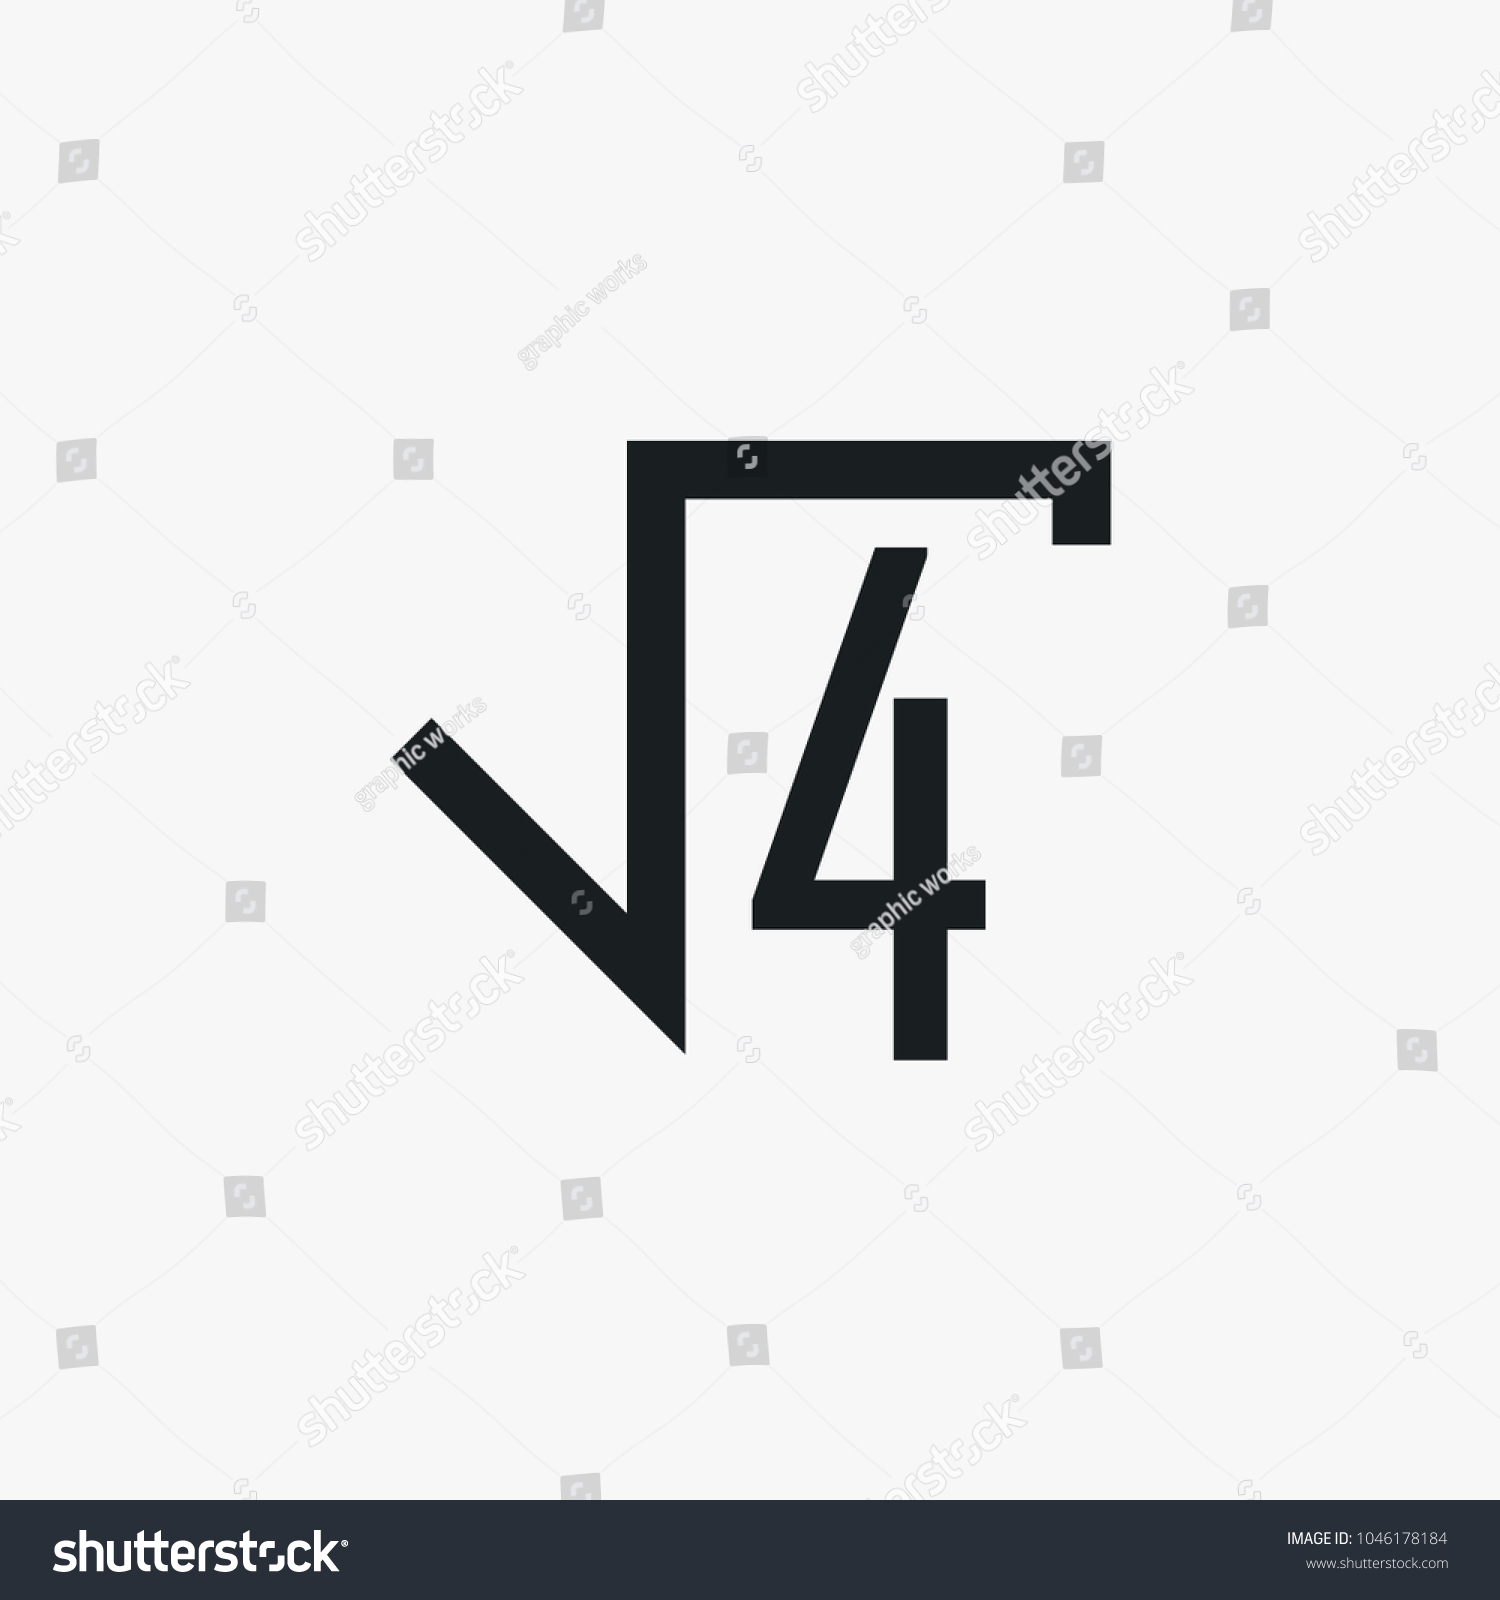 Square Root Icon Simple School Element Stock Vector 1046178184